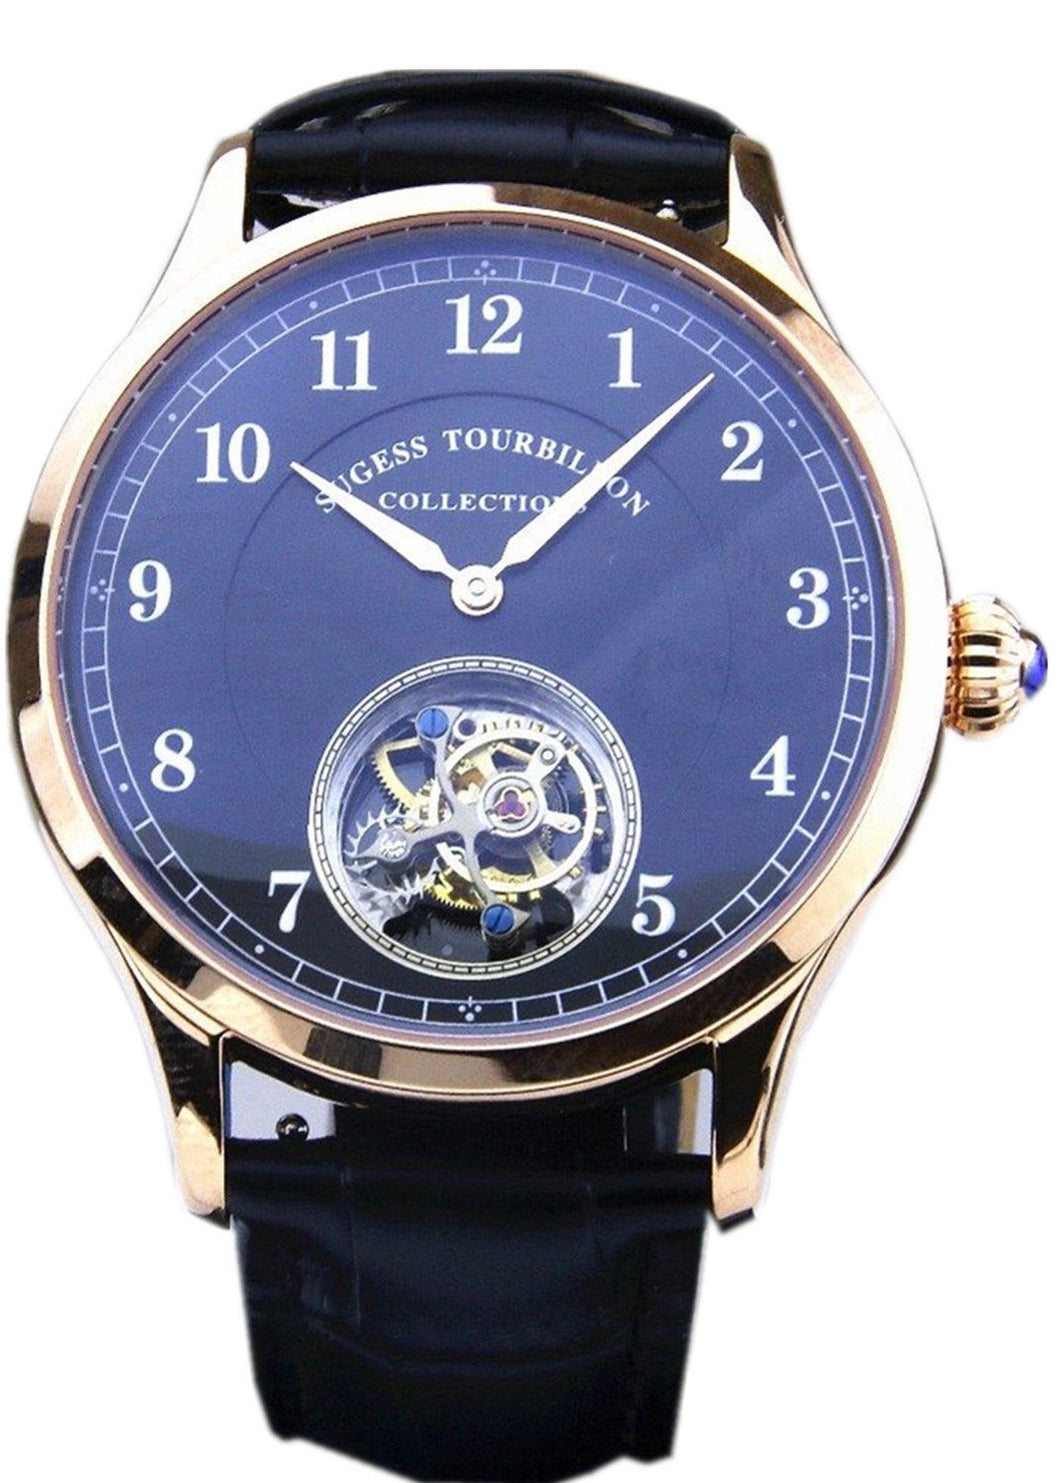 SUGESS TOURBILLON (3485847912525)